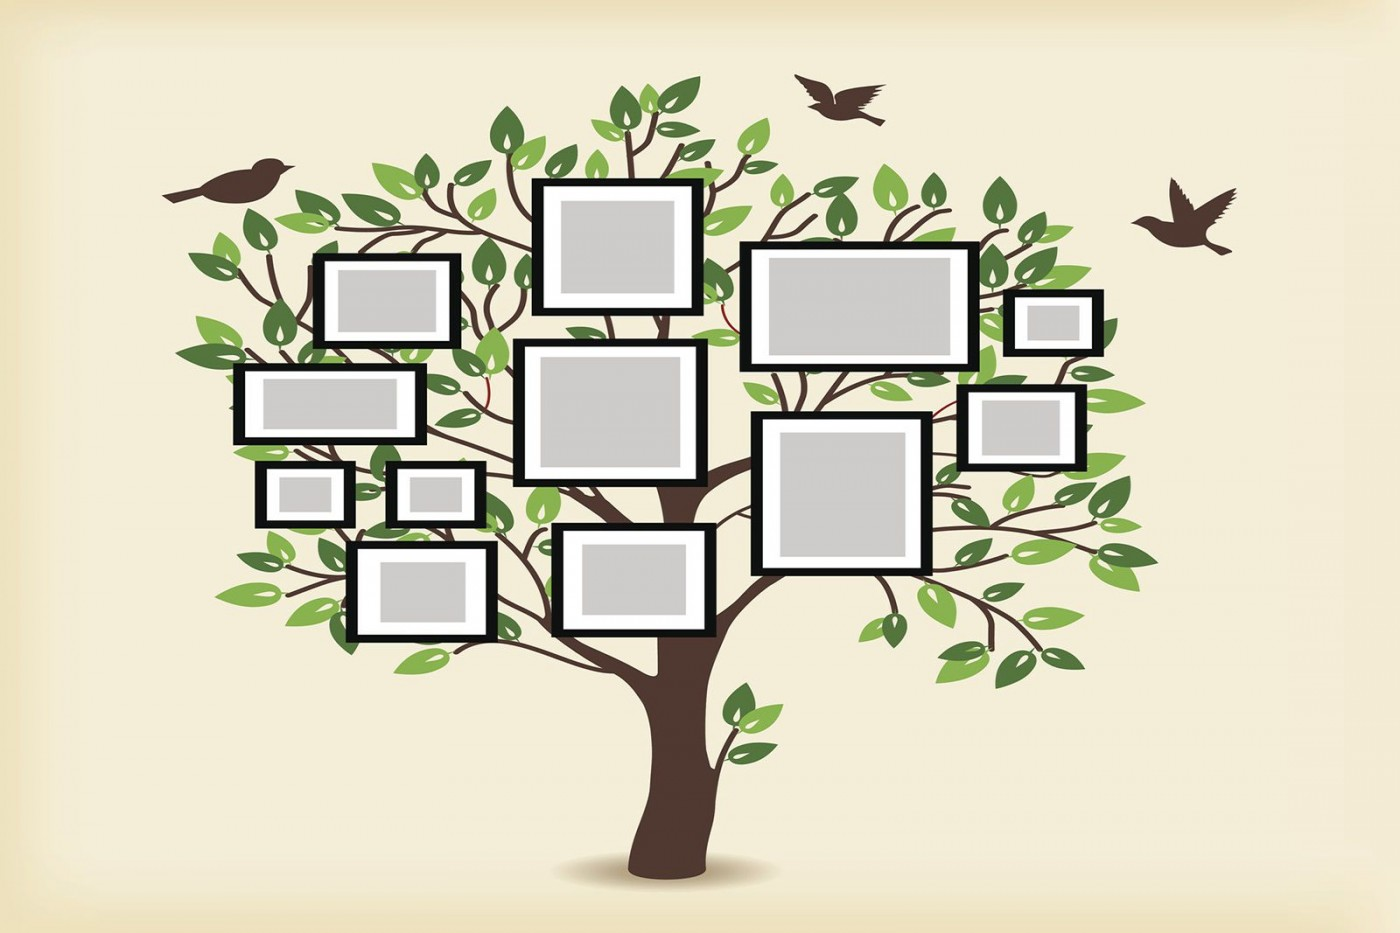 006 Remarkable Family Tree For Baby Book Template Sample  Printable1400